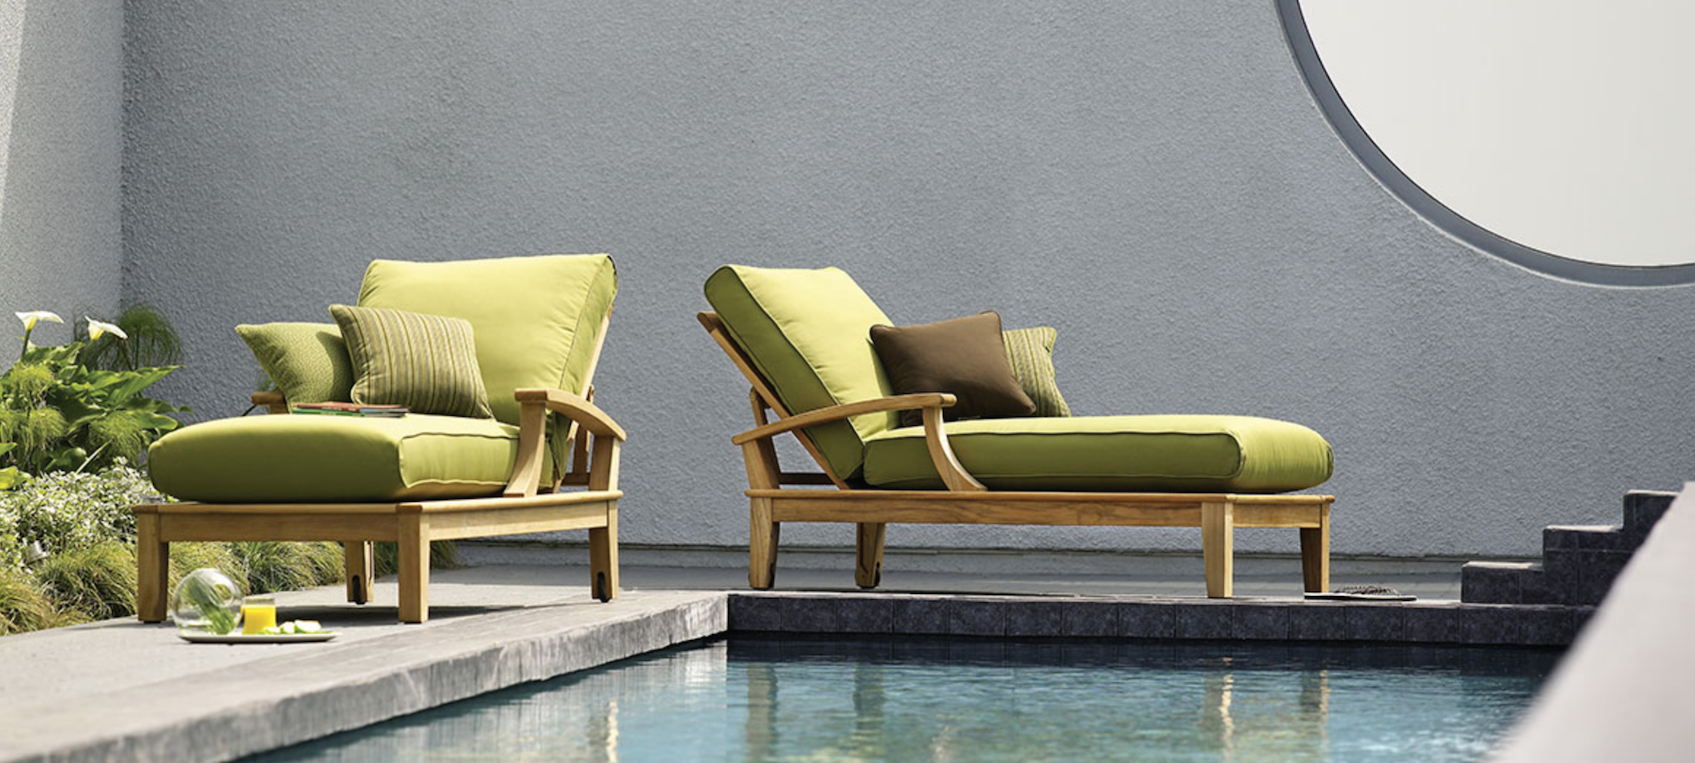 Terris Draheim Represents 15 20 Of The Finest Lines Of Contemporary,  Classic And Transitional Outdoor Furniture. Paul Patterson, The Outdoor  Showroomu0027s ...